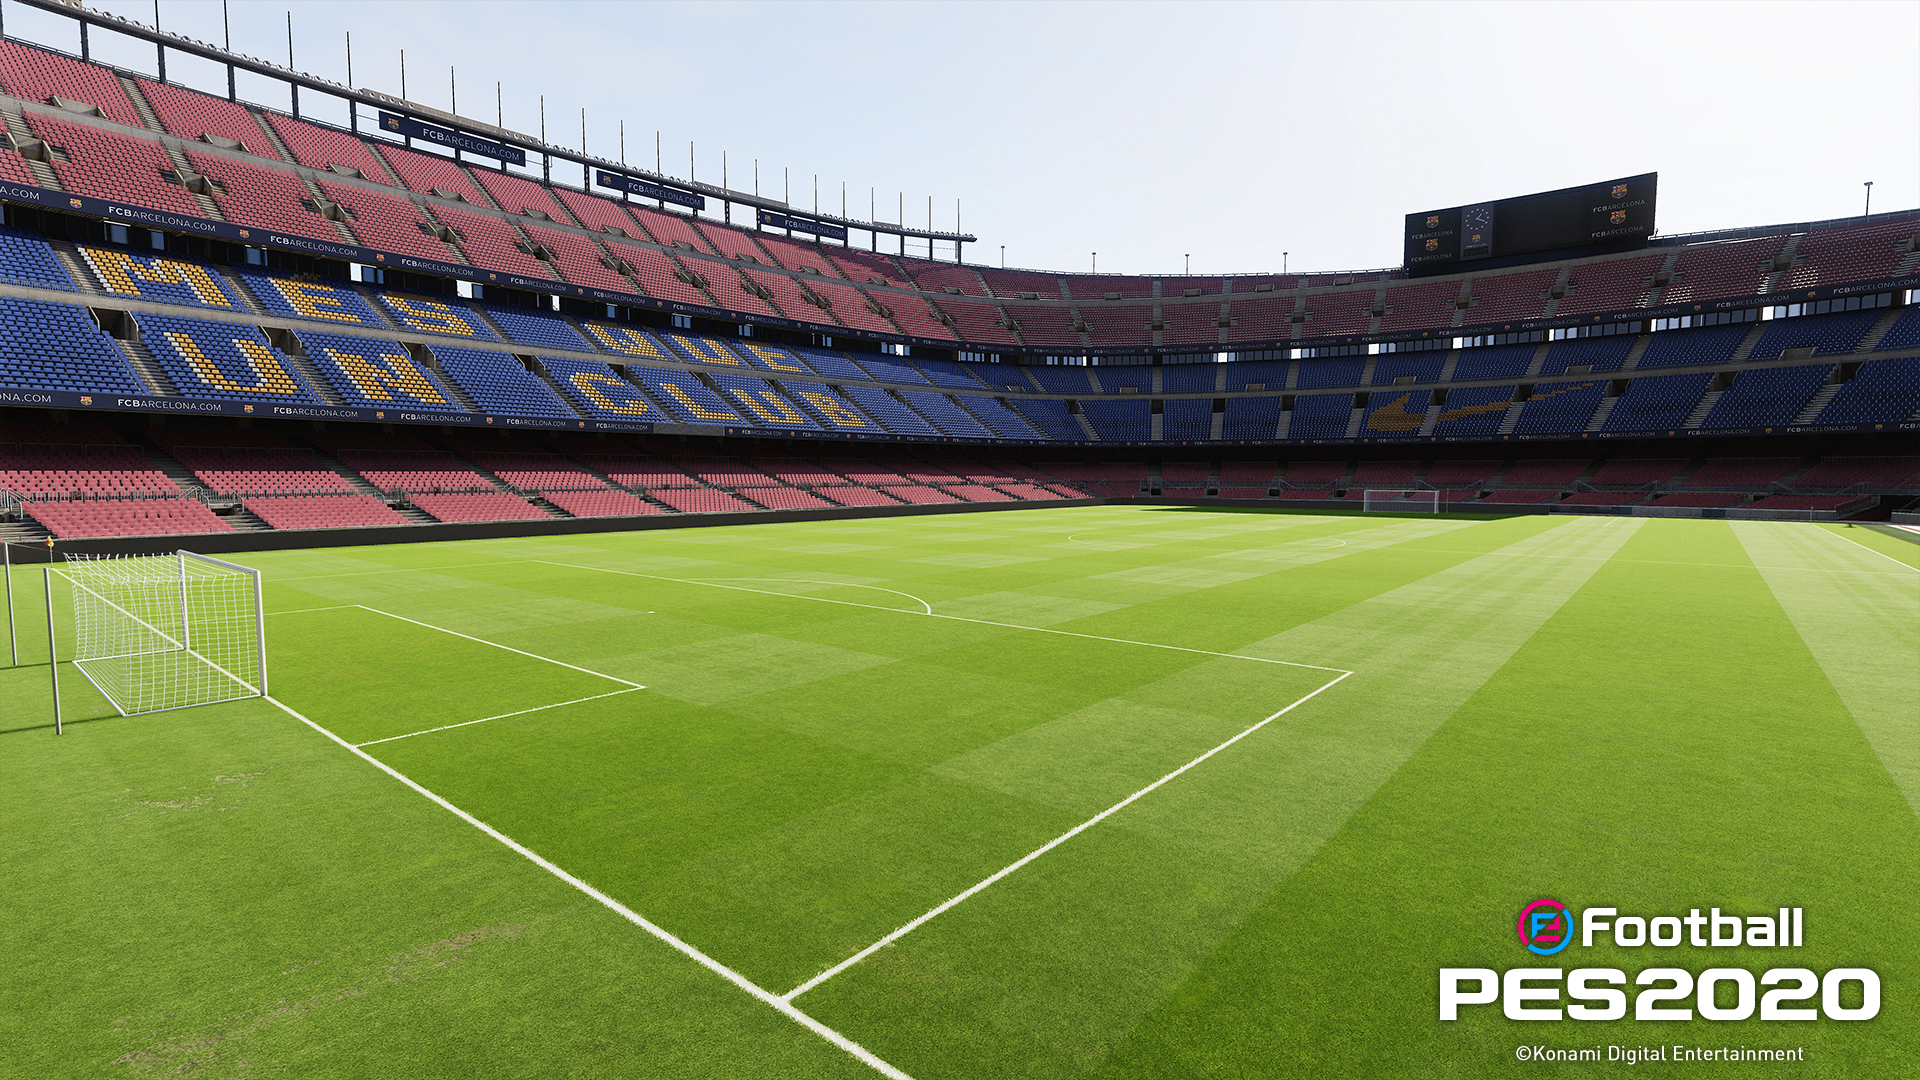 PES2020_Camp_Nou_turf_1560264510.jpg